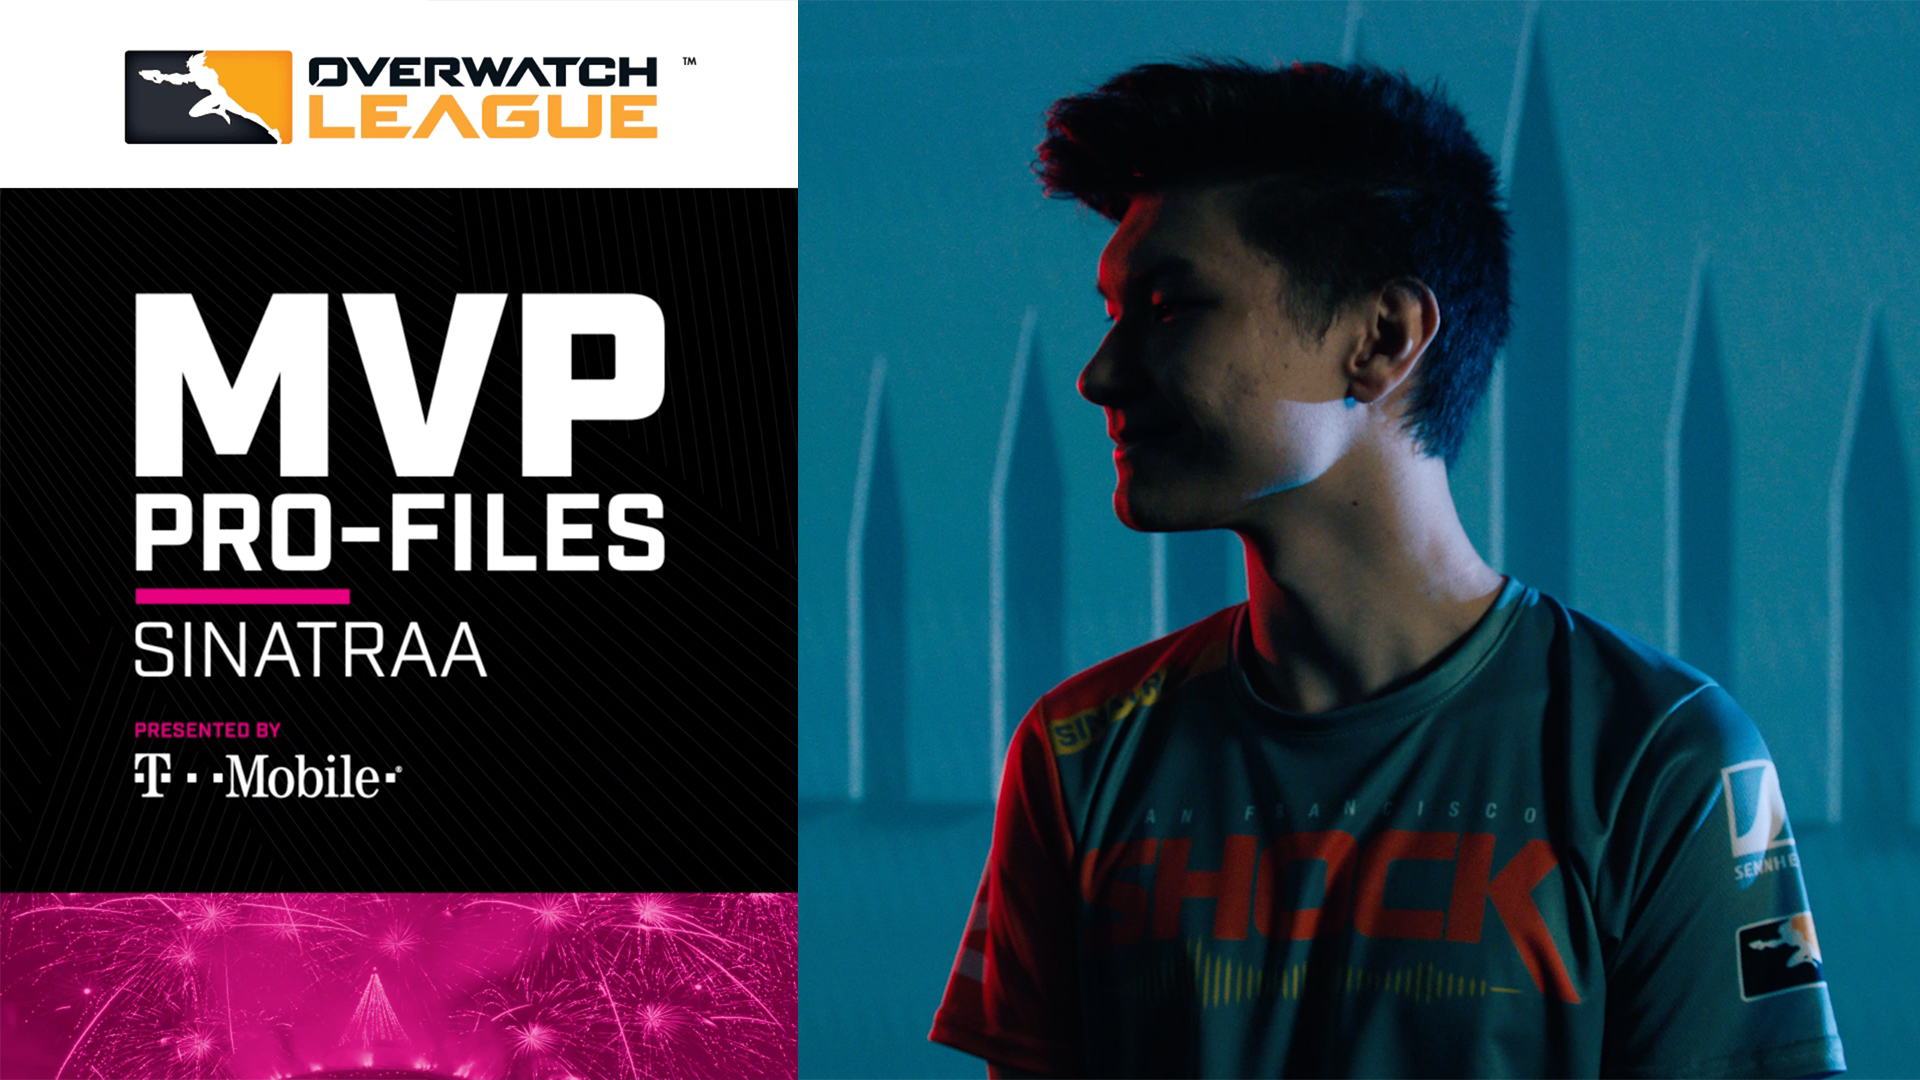 Overwatch League MVP Pro-Files: sinatraa